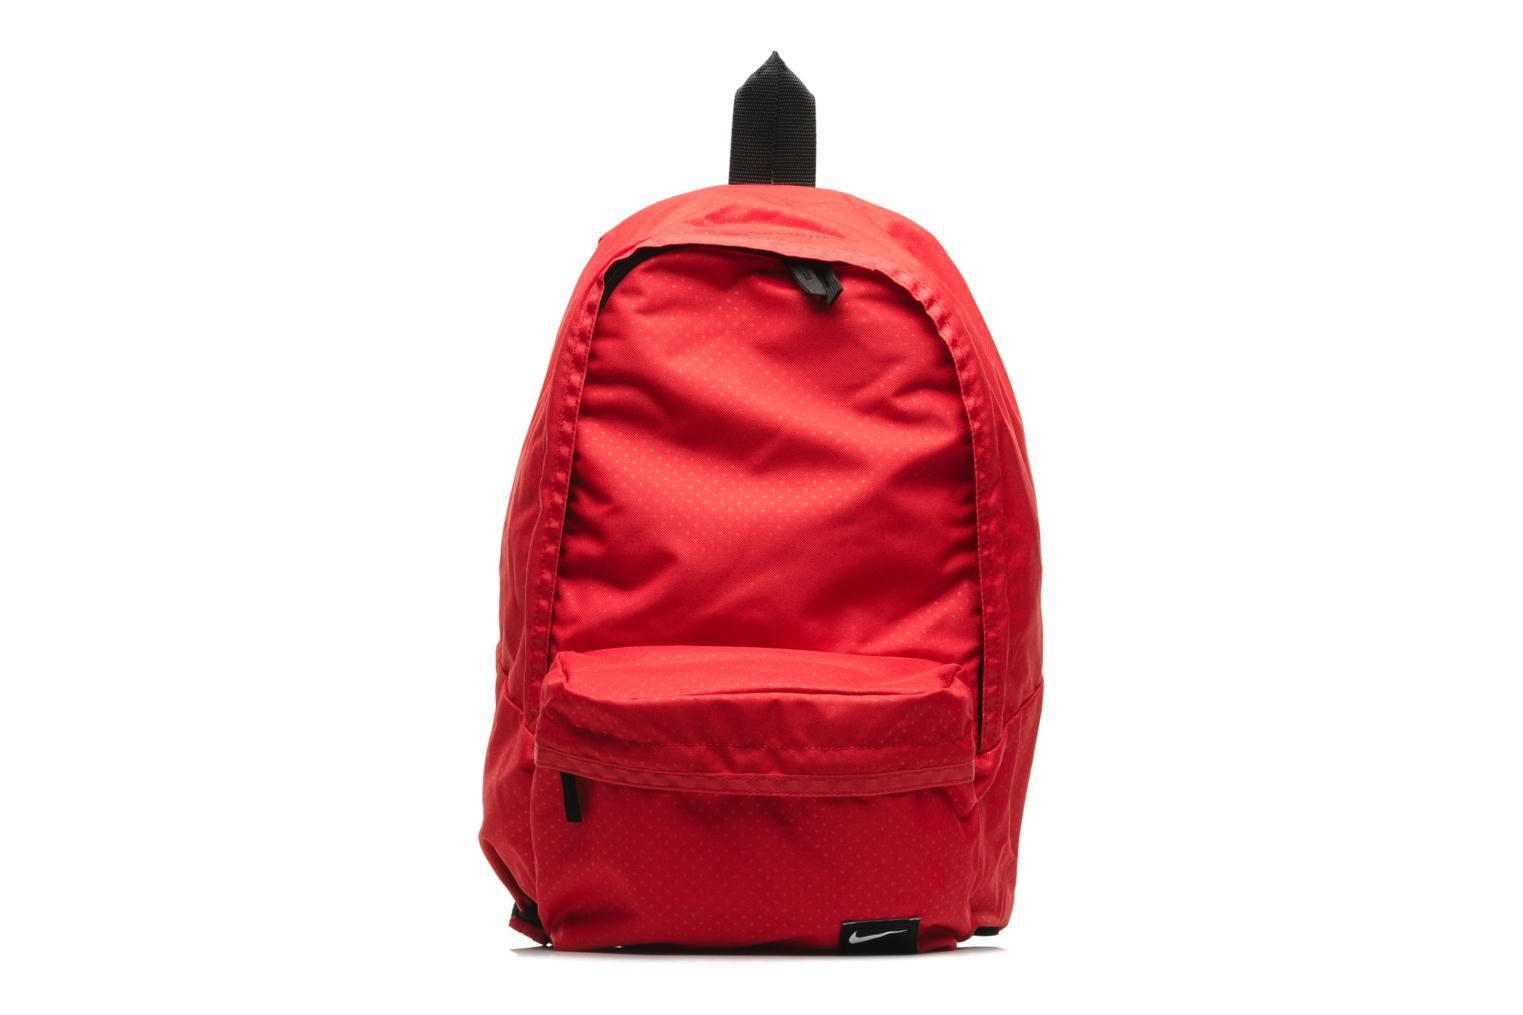 Nike Dos Th6xqph À Halfday Rouge Chez Sarenza Access Sacs 123483 All tdQrsh